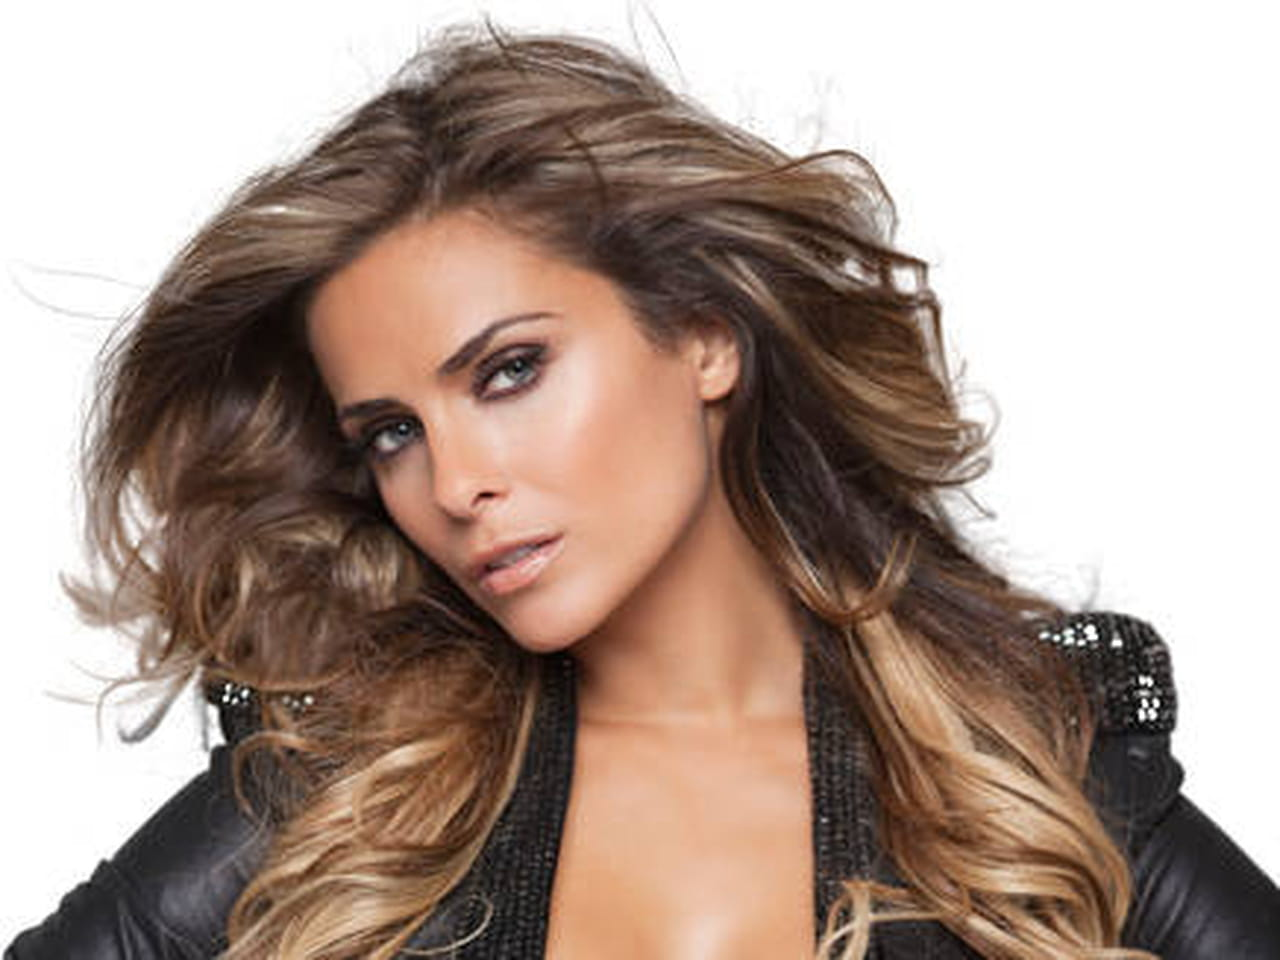 clara morgane secret story la t l r alit qui me pla t le plus. Black Bedroom Furniture Sets. Home Design Ideas